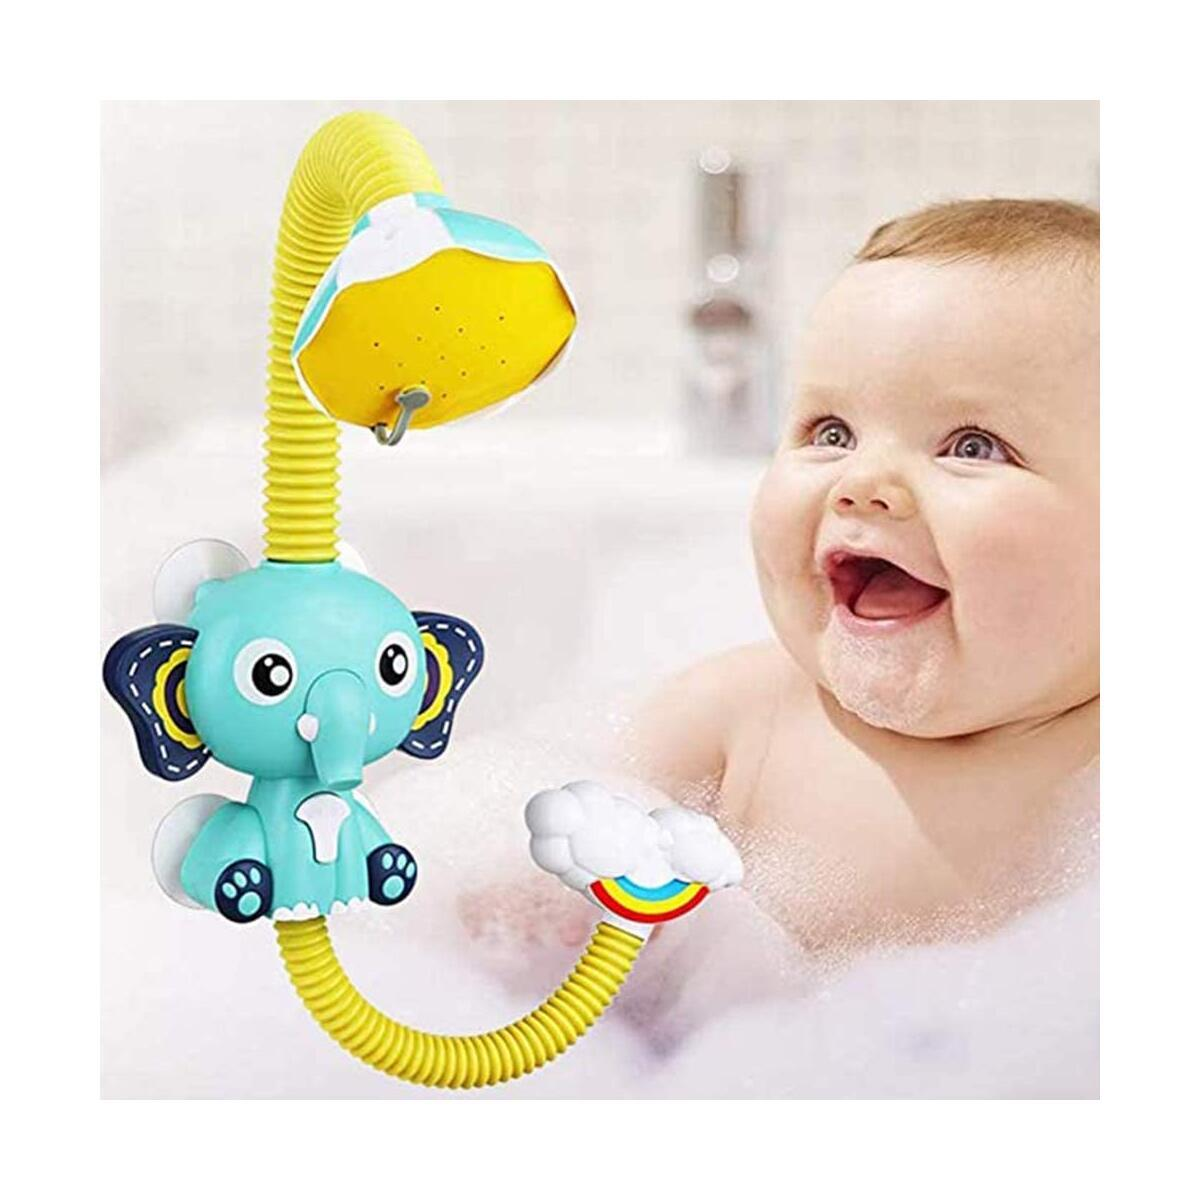 Baby Bath Toys Electric Shower - Sucker Electric Shower Rain Head Kids Bathing Time Toddlers Game Elephant Animal Toy 4 X 1.5V AAA Required (Not Included)